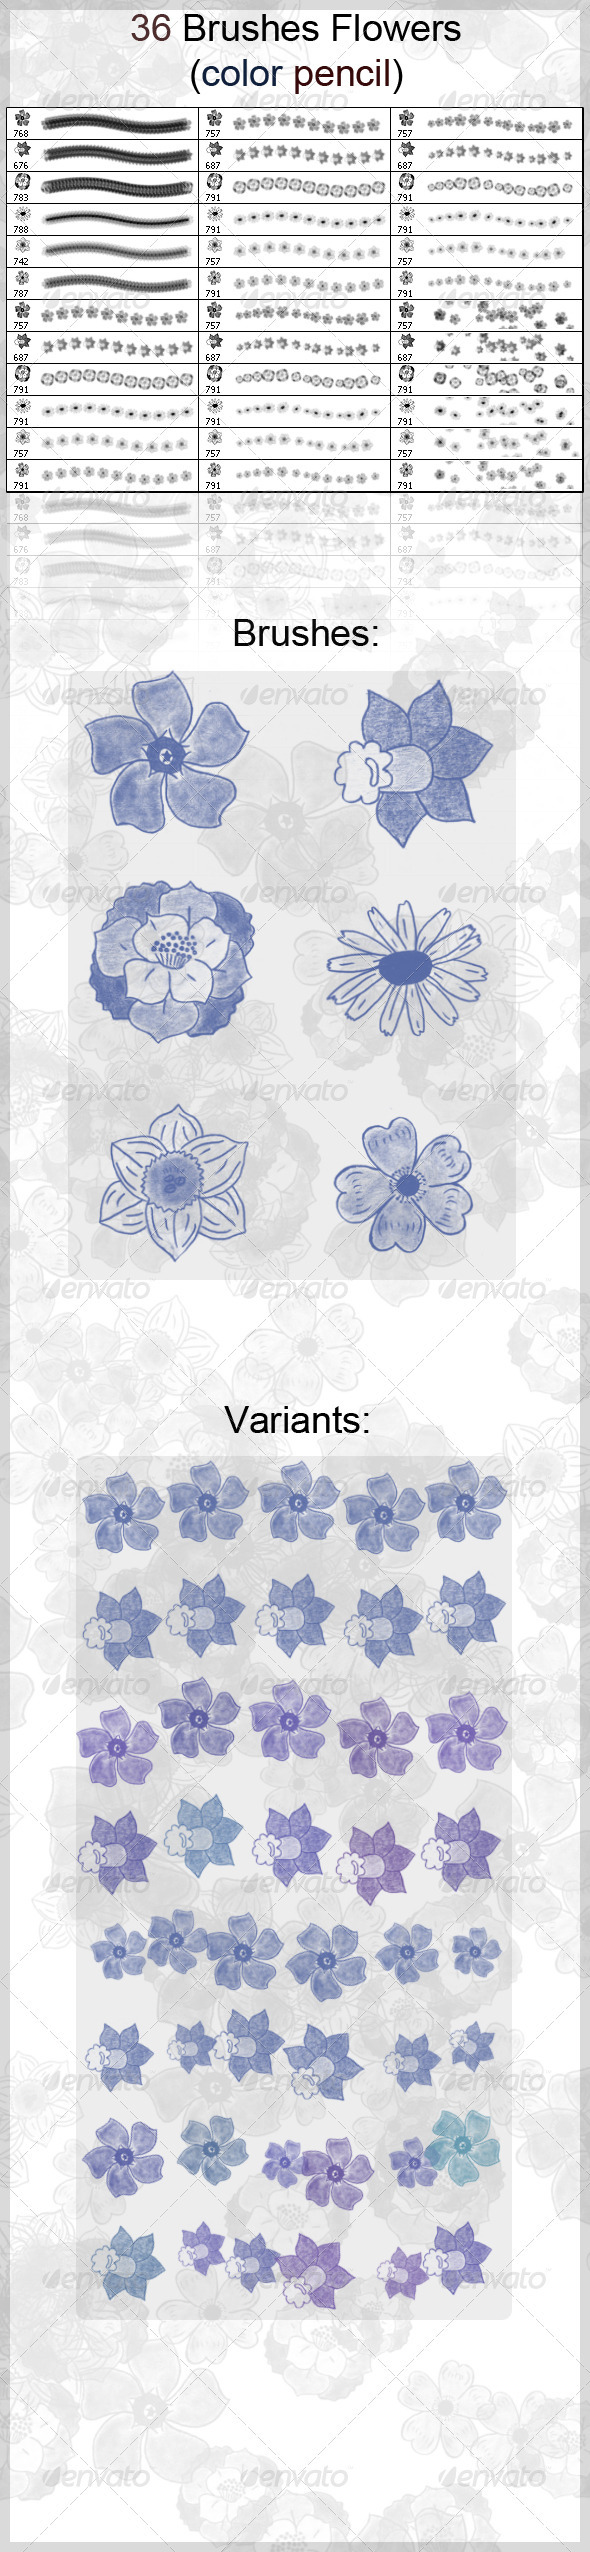 GraphicRiver 36 Brushes Flowers Color Pencil 3919627